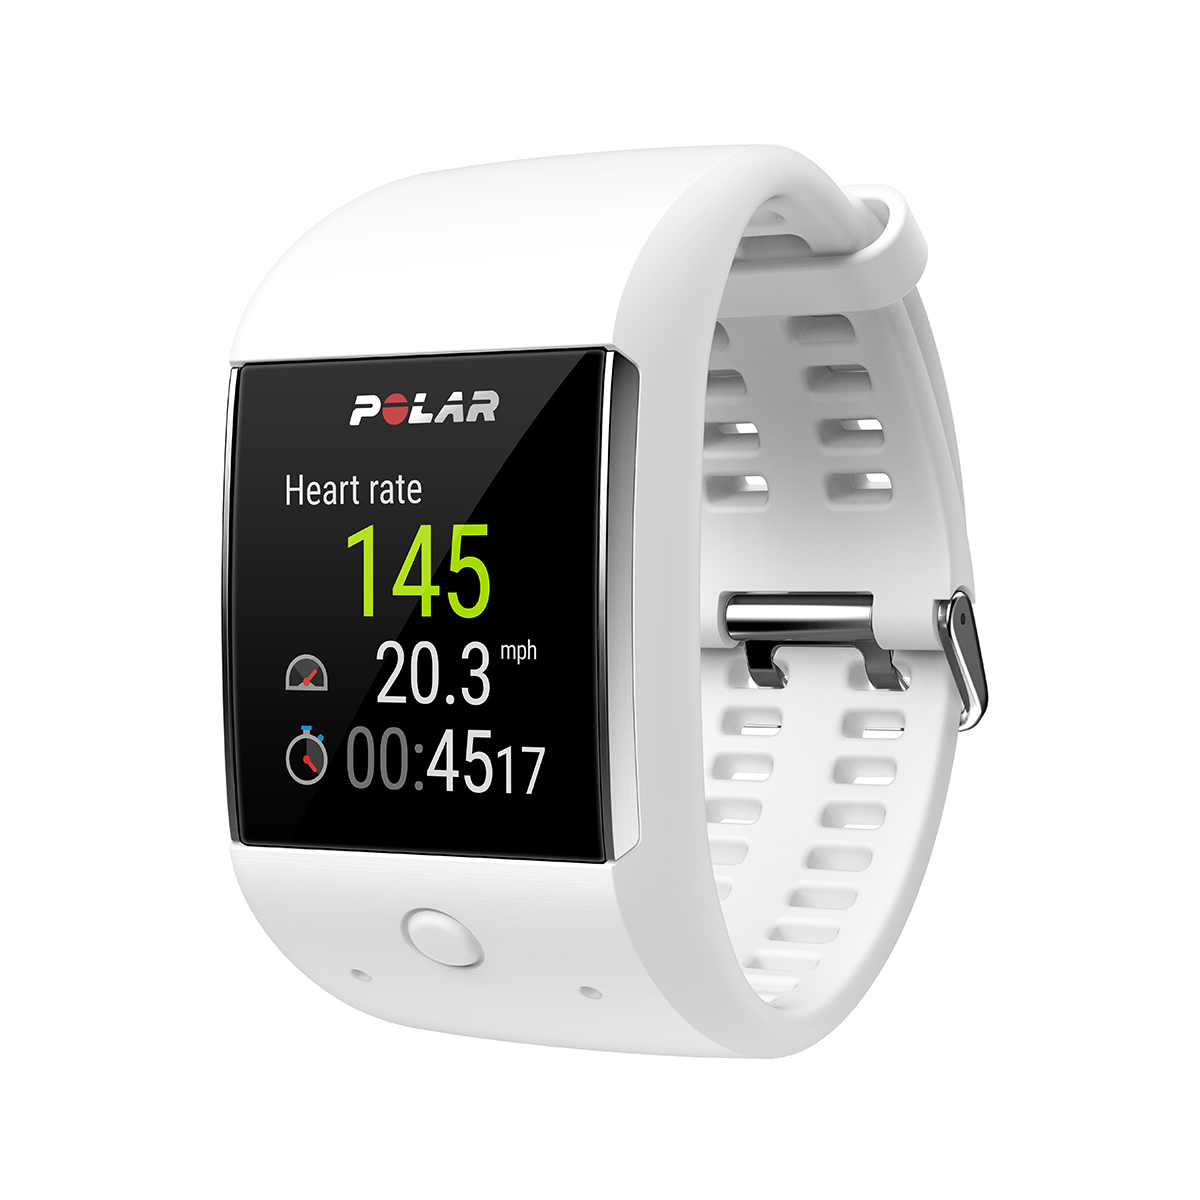 Polar's New Android Smartwatch Can Train Serious And Novice Athletes